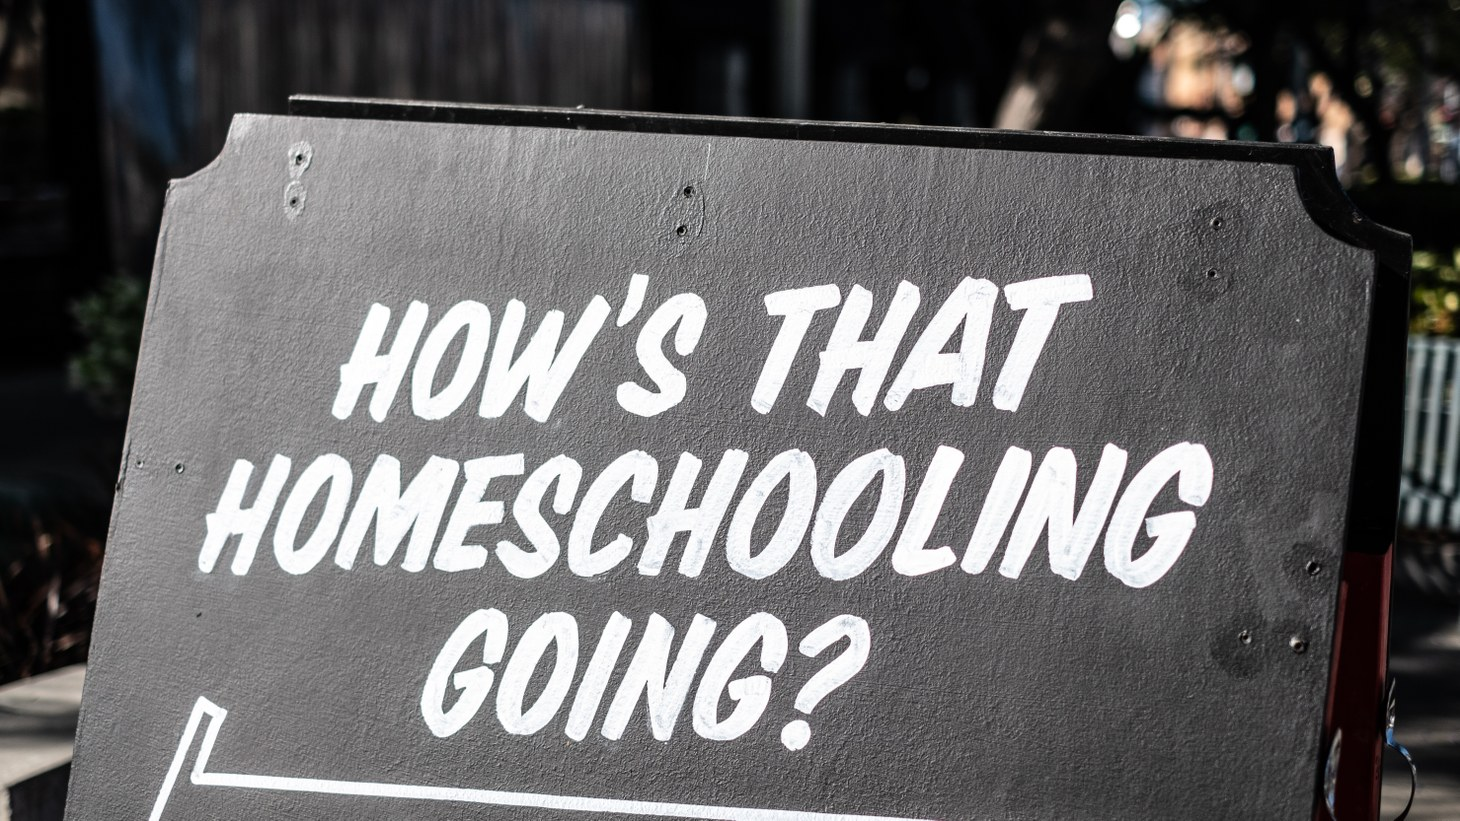 """A sign in Culver City says, """"How's that homeschooling going?"""" For some LAUSD students, they don't have laptops, fast internet, a work station, or enough quiet space at home for learning."""